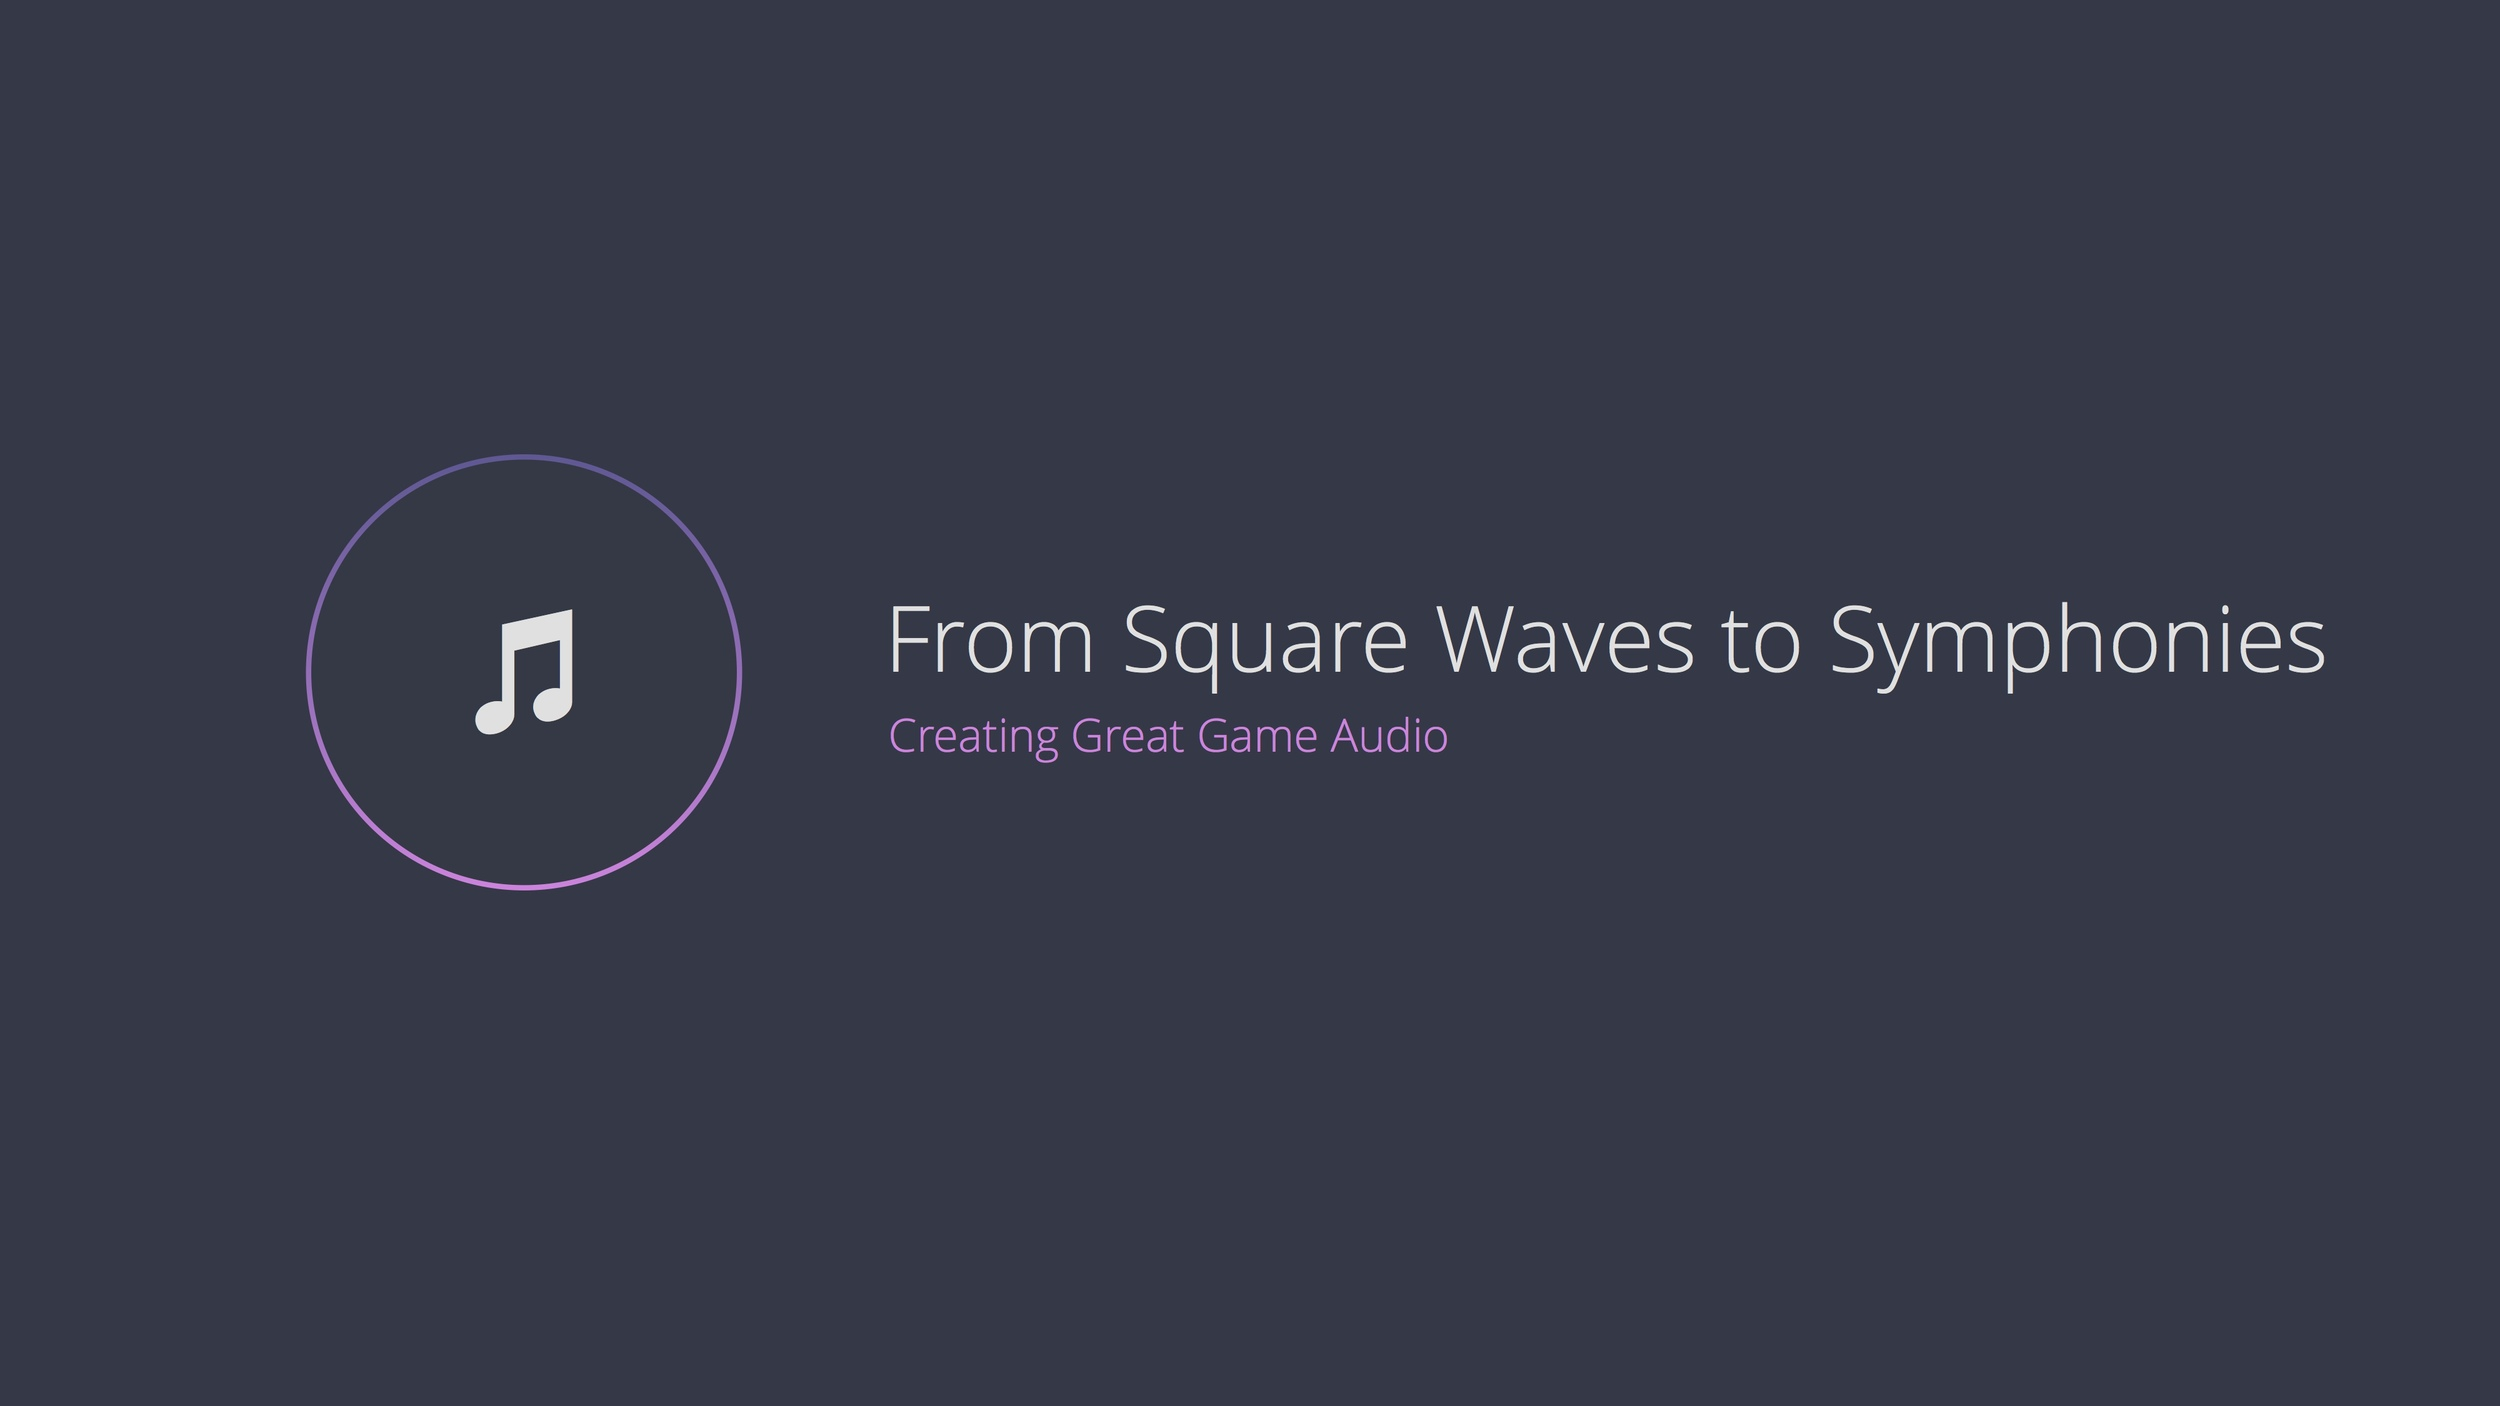 From Square Waves to Symphonies: Creating Great Game Audio. Presented at PAX Prime 2014.